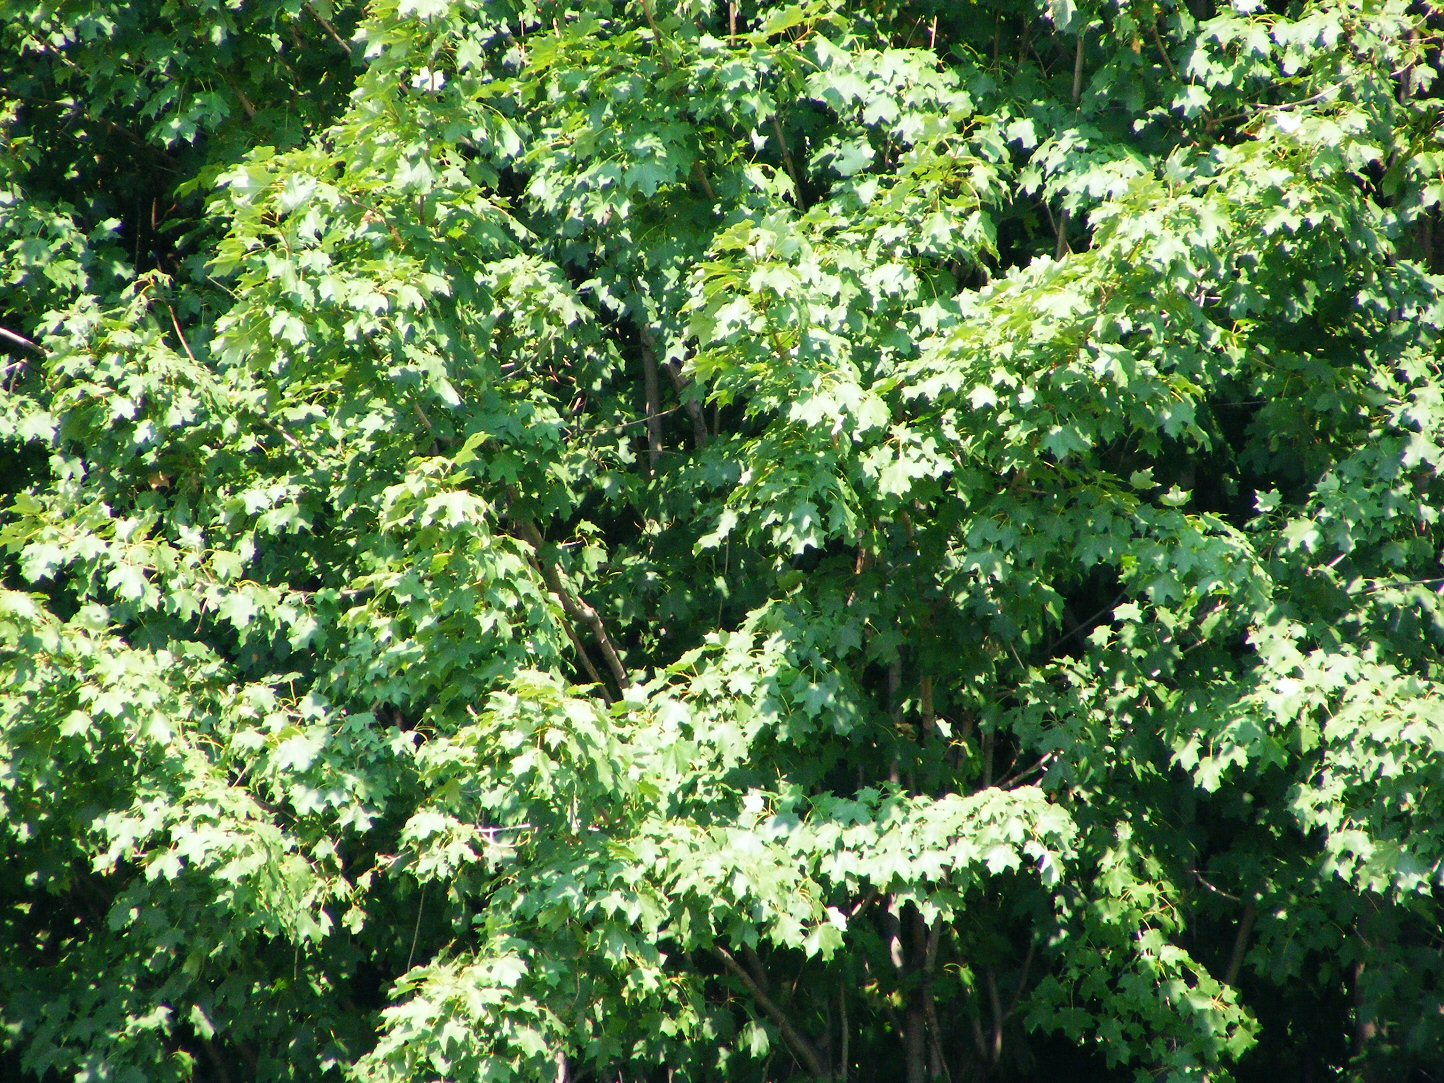 Summer Leaves in a Tree